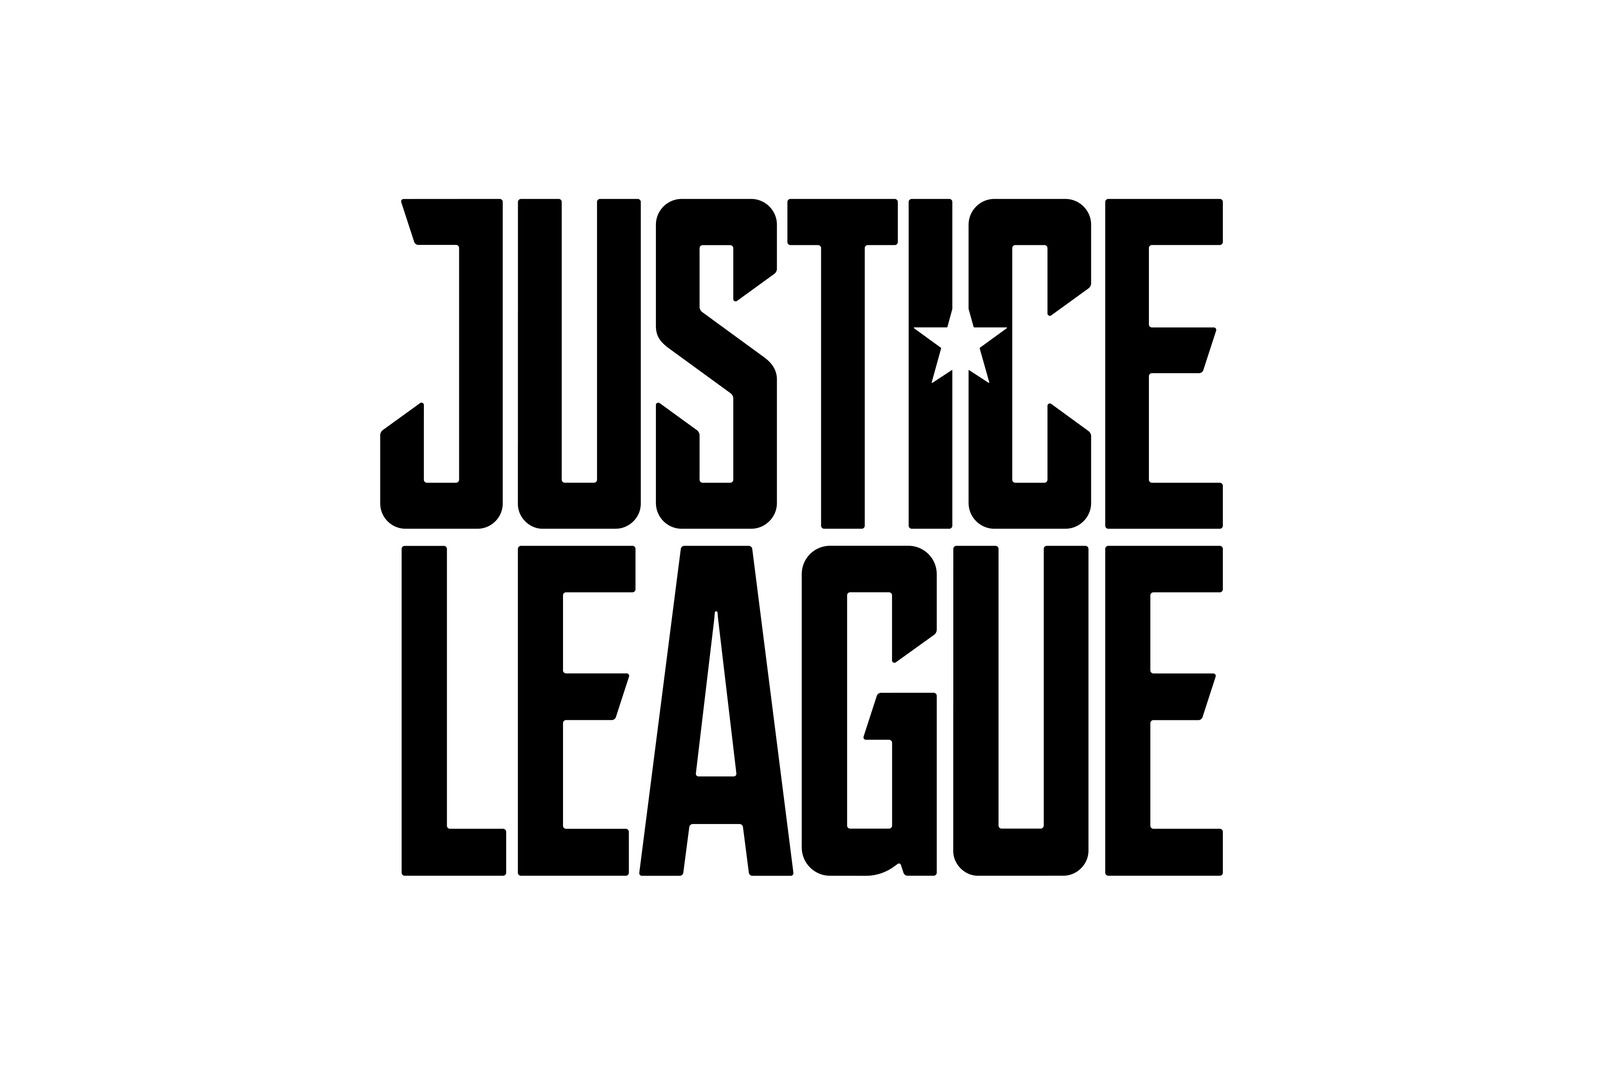 The justice league logo